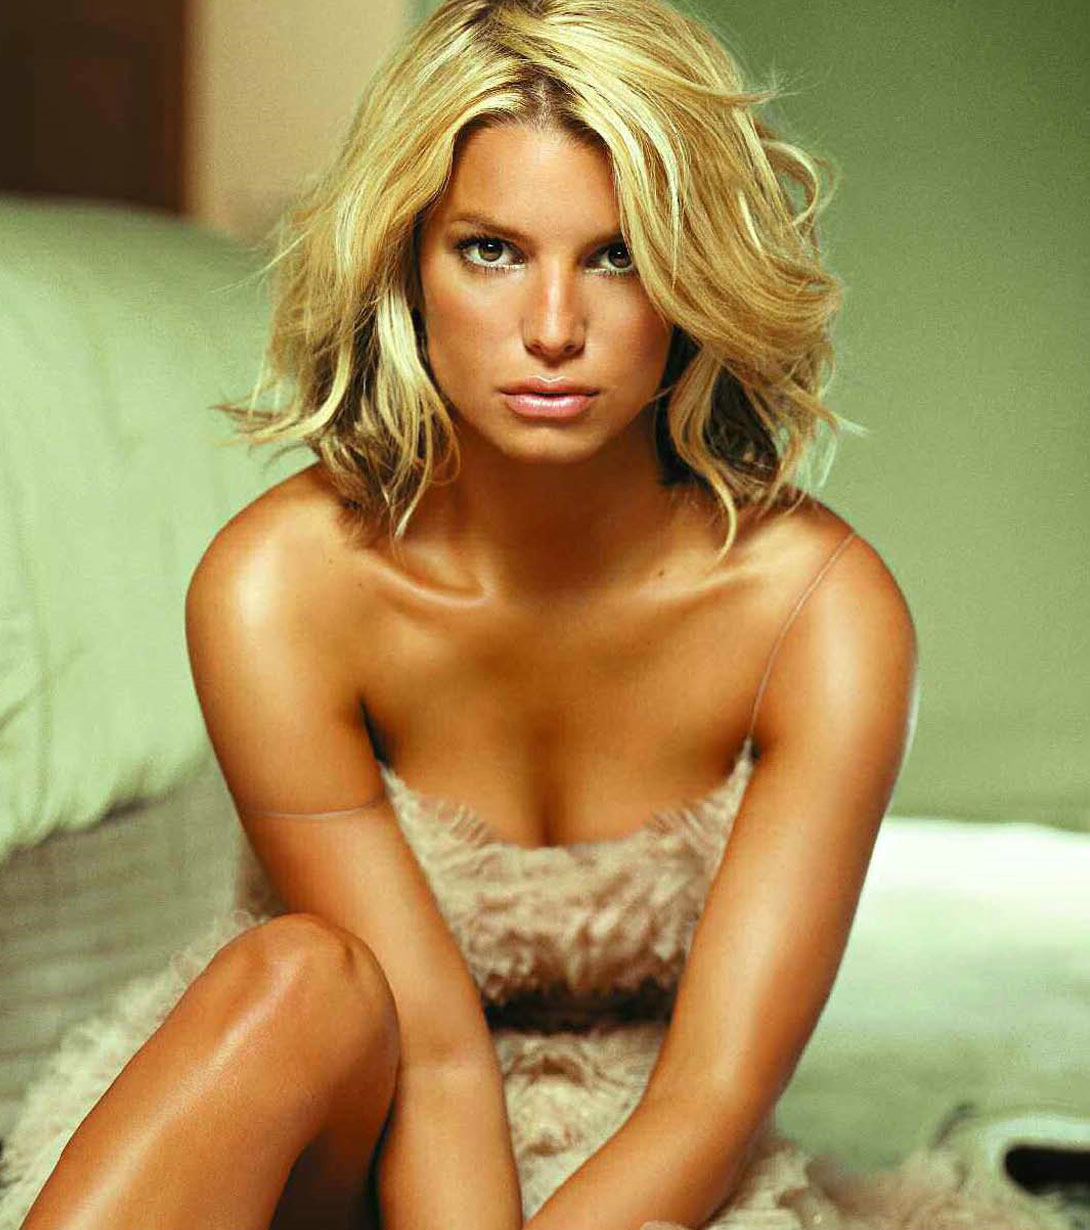 jessica simpson hot naked sex